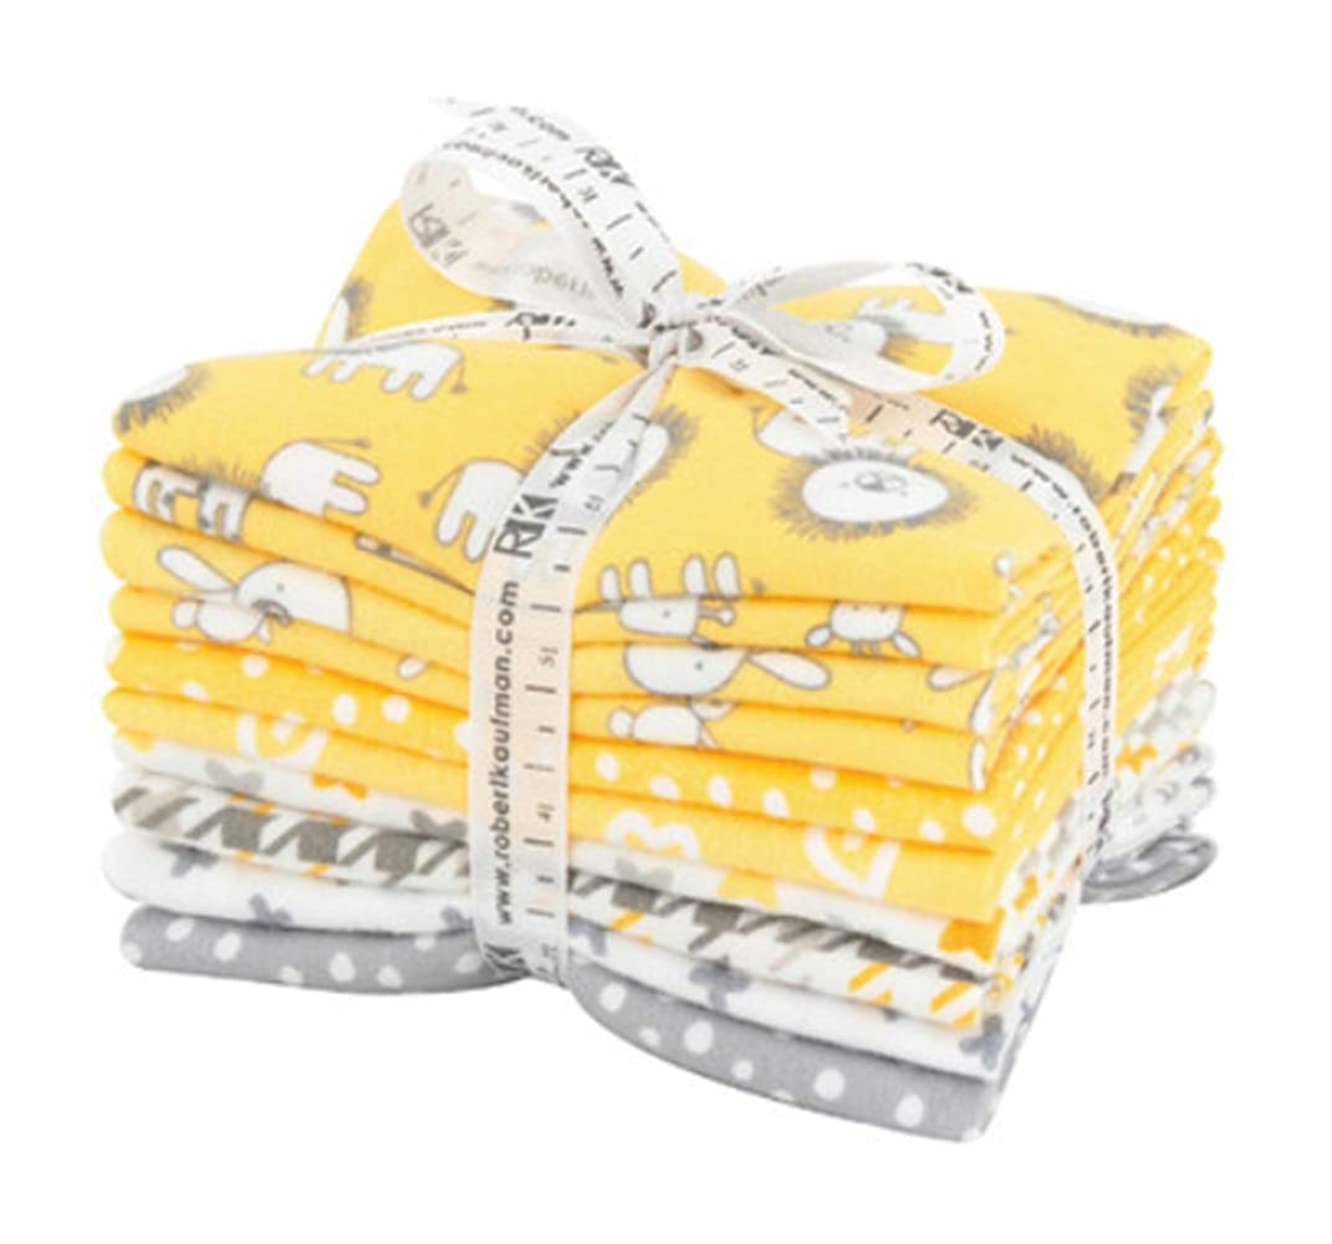 Penned Pals Flannel Fat Quarter Bundle 10 Precut Cotton Fabric Quilting FQs Assortment Yellow Colorstory by Ann Kelle for Robert Kaufman